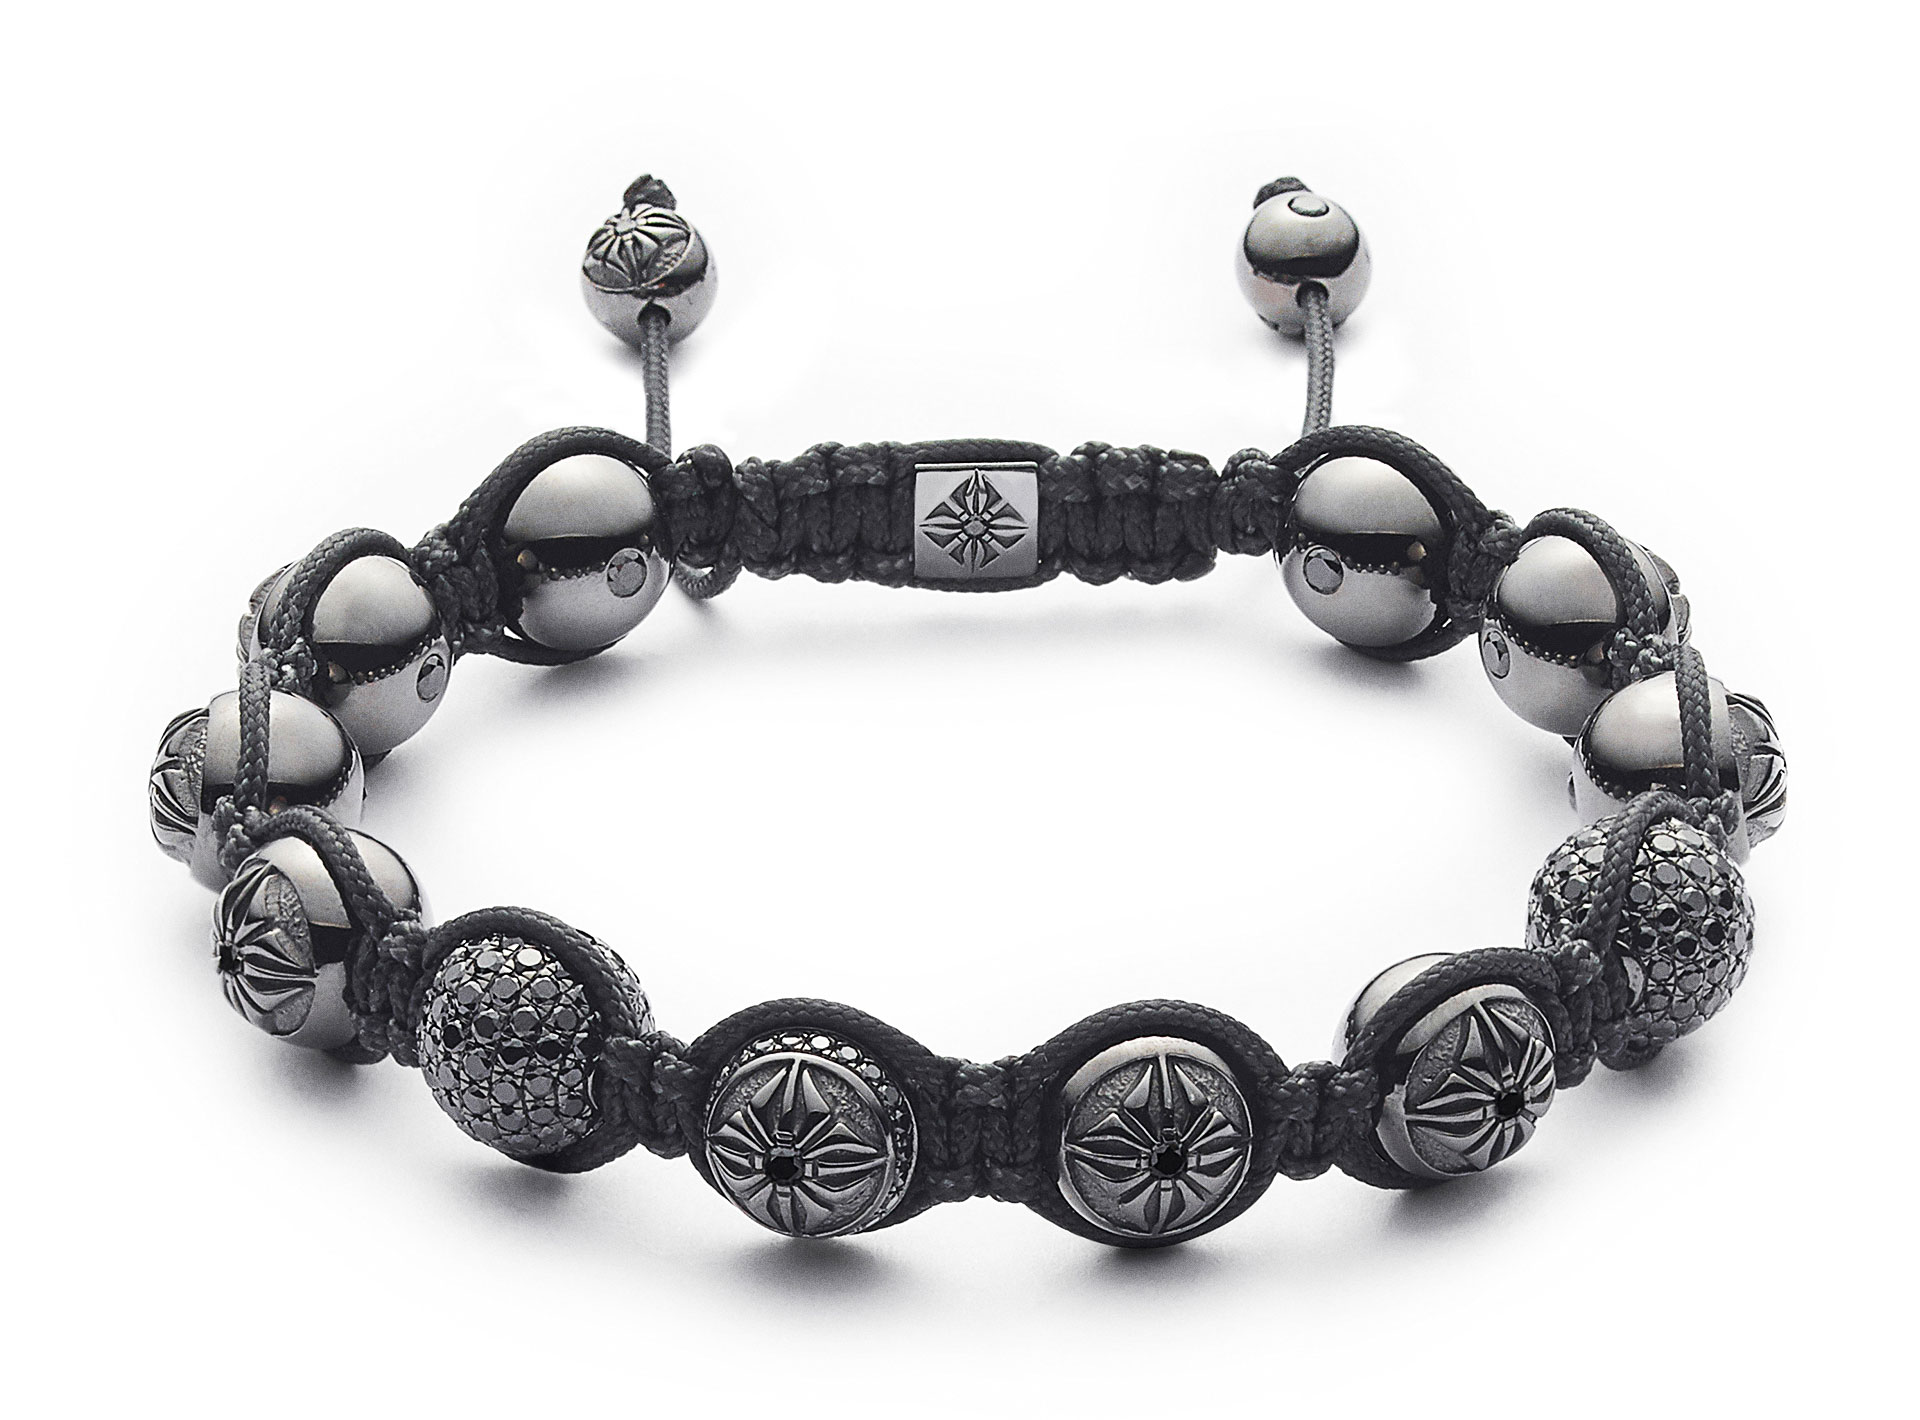 10mm Braided Bracelet Shamballa Jewels